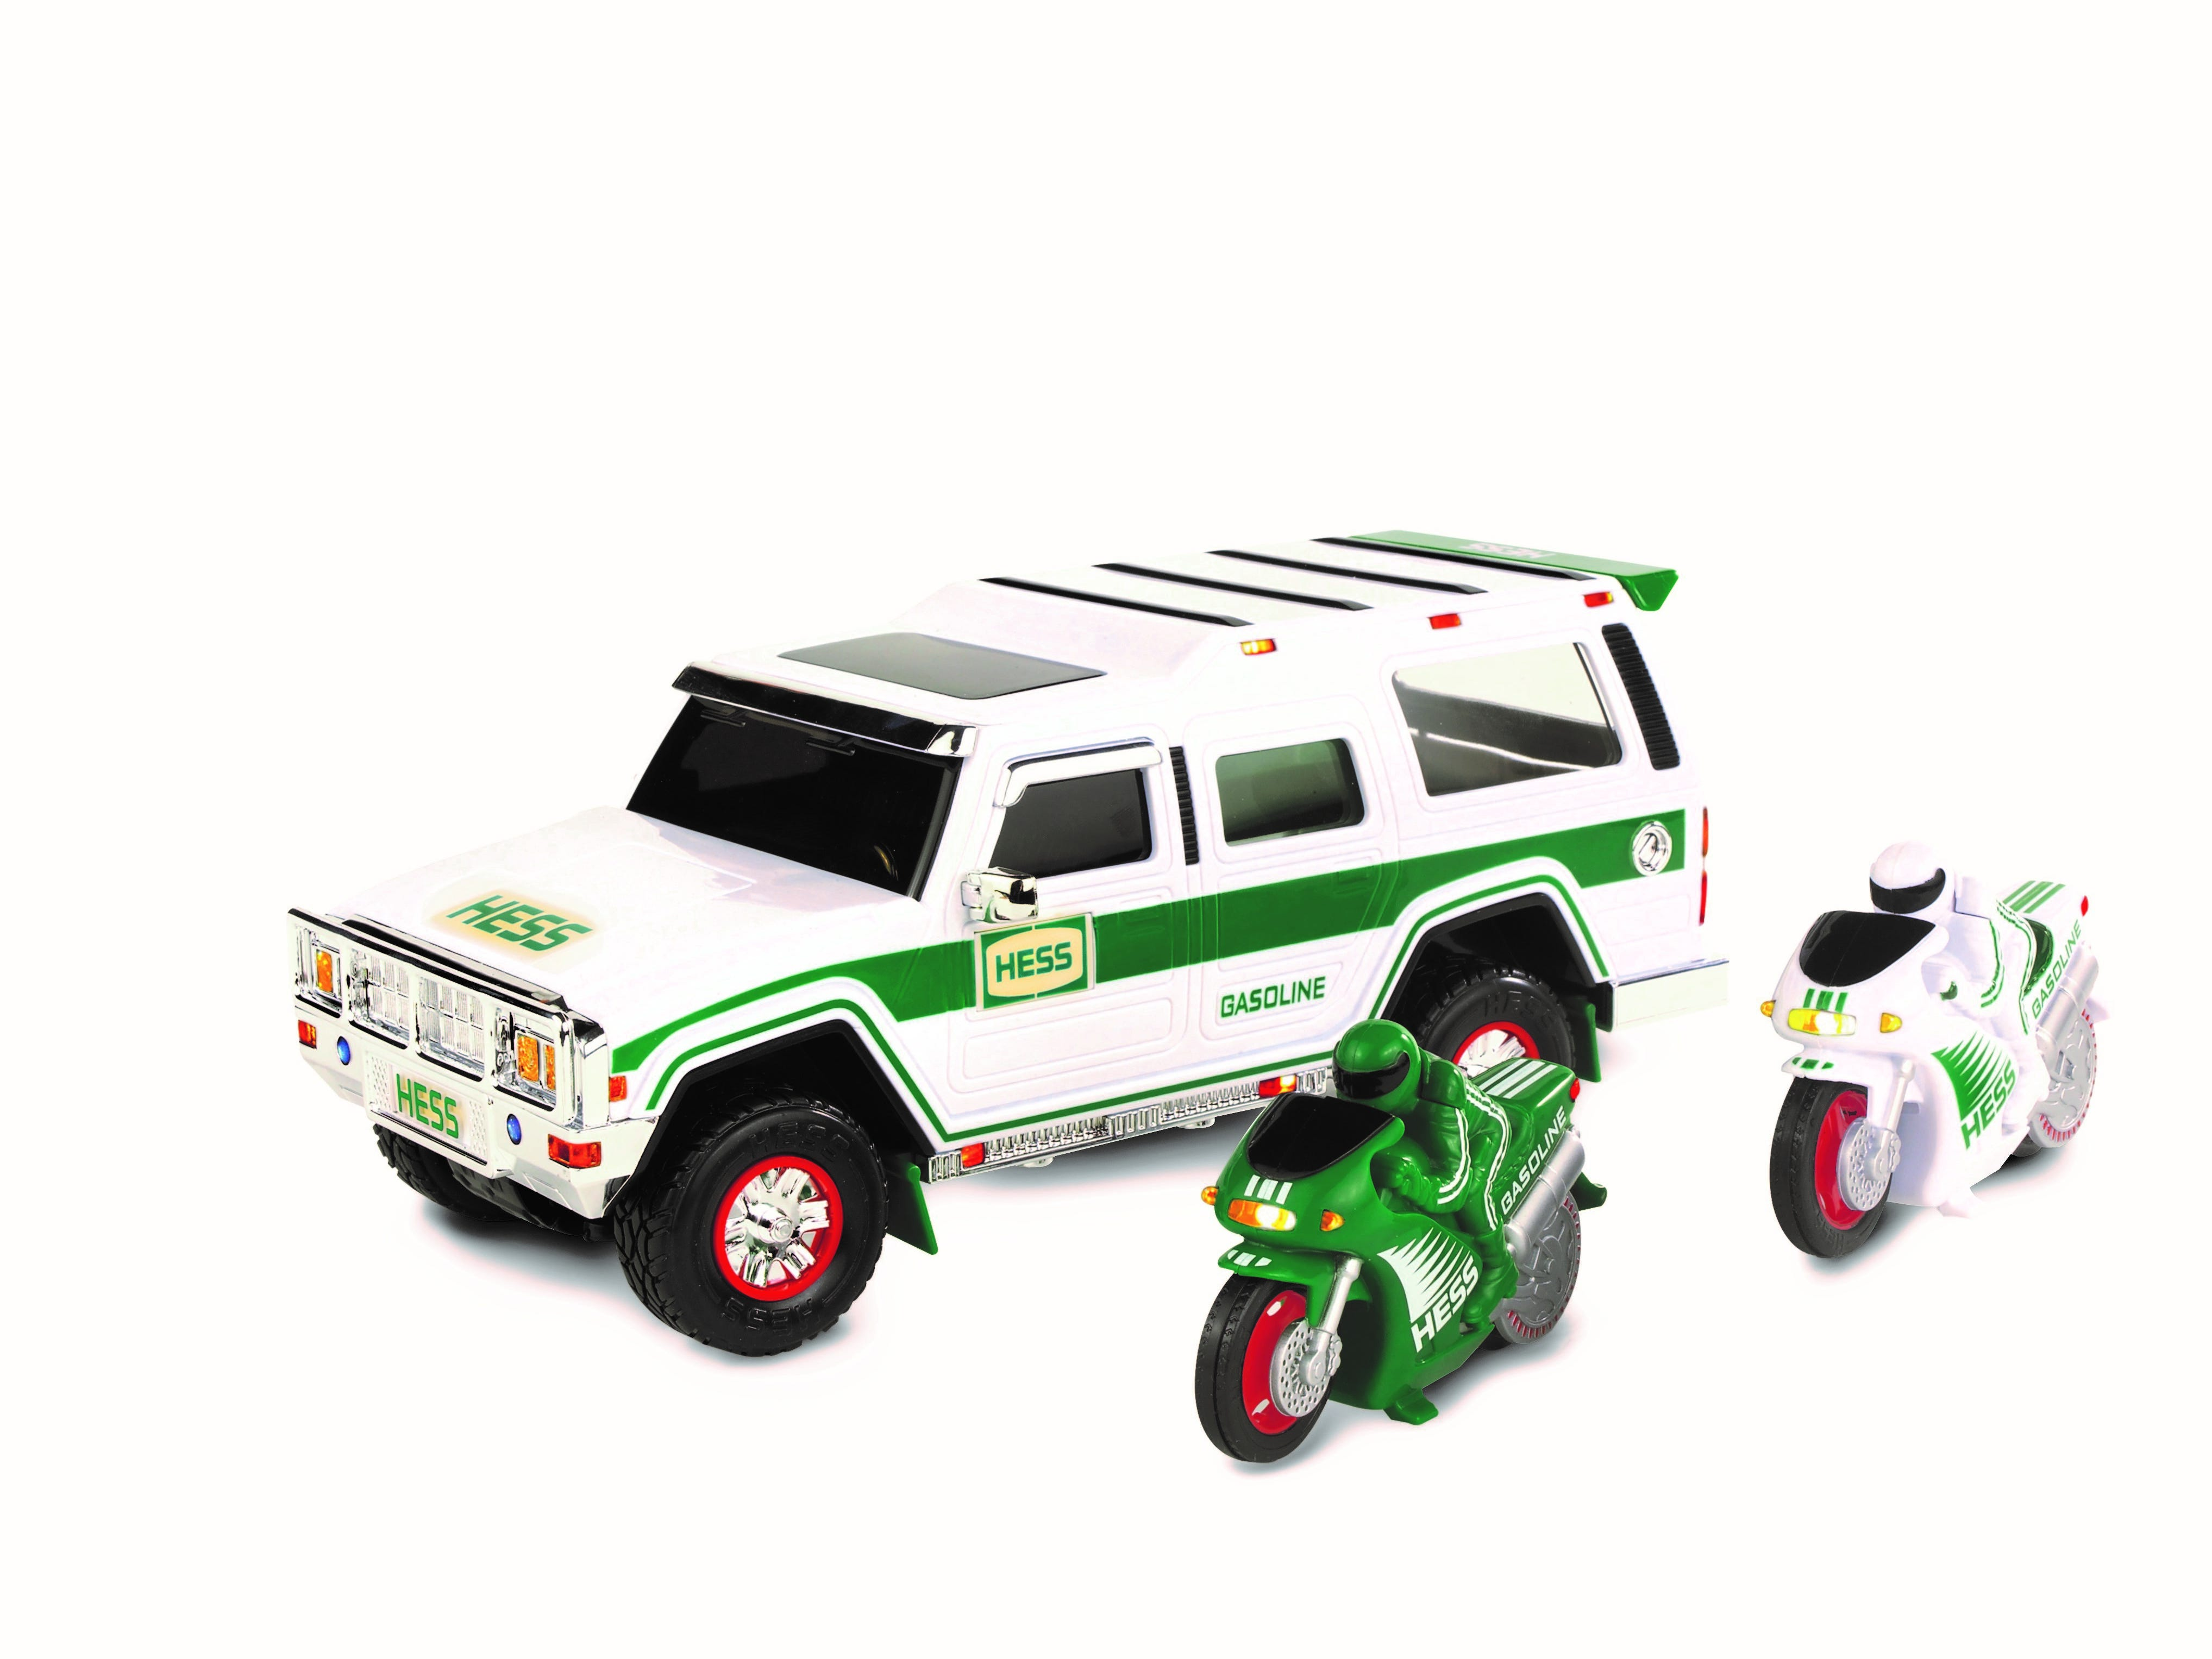 The 2004 Hess toy truck